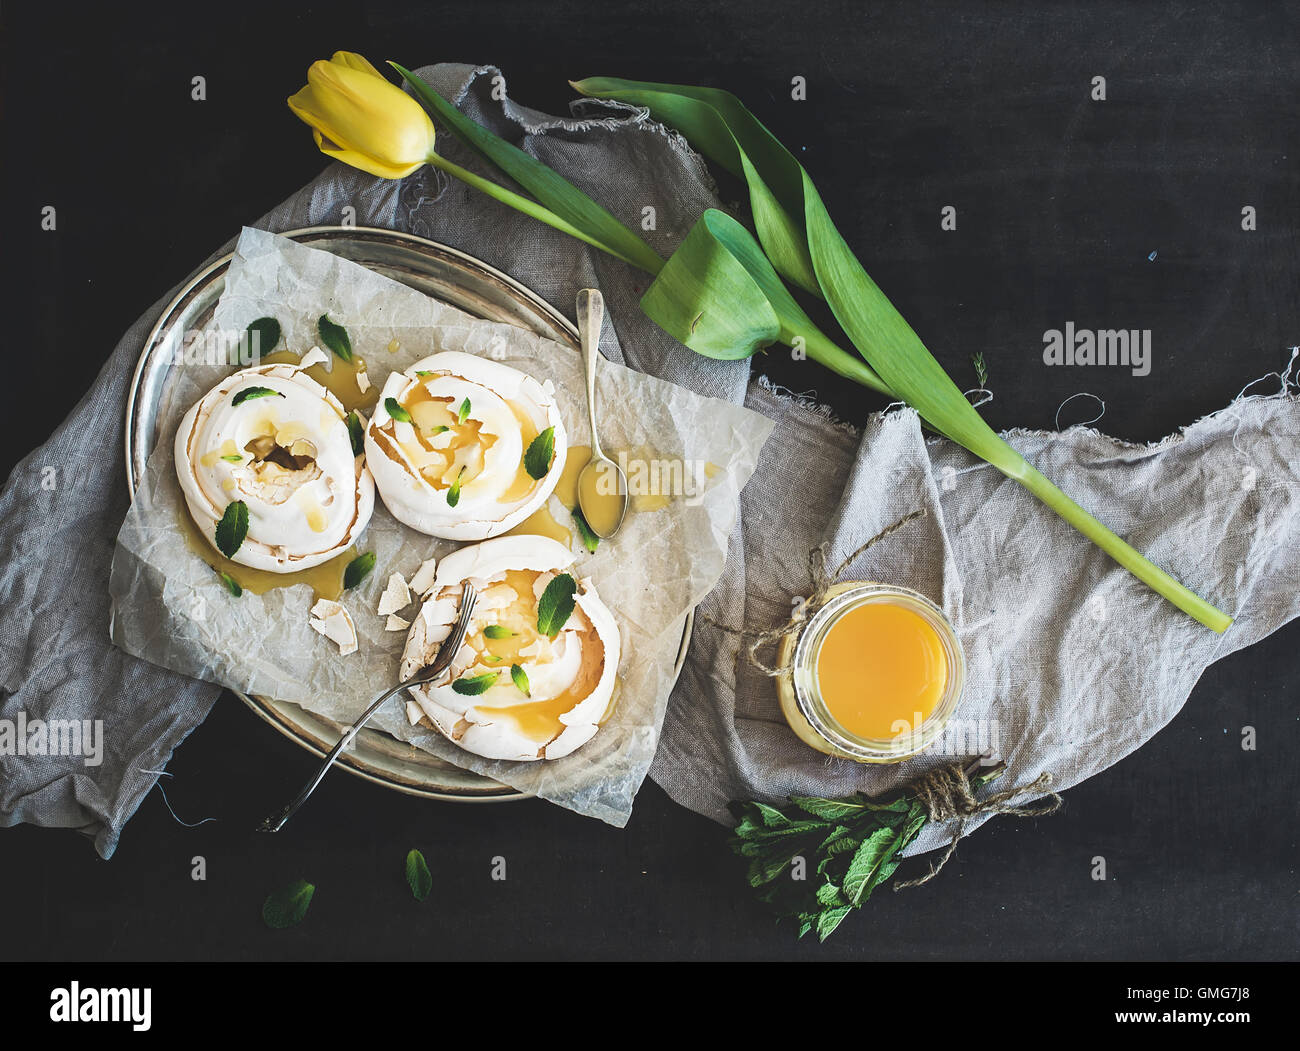 Merengues with lemon curd, fresh mint on silver tray, beige kitchen towel - Stock Image